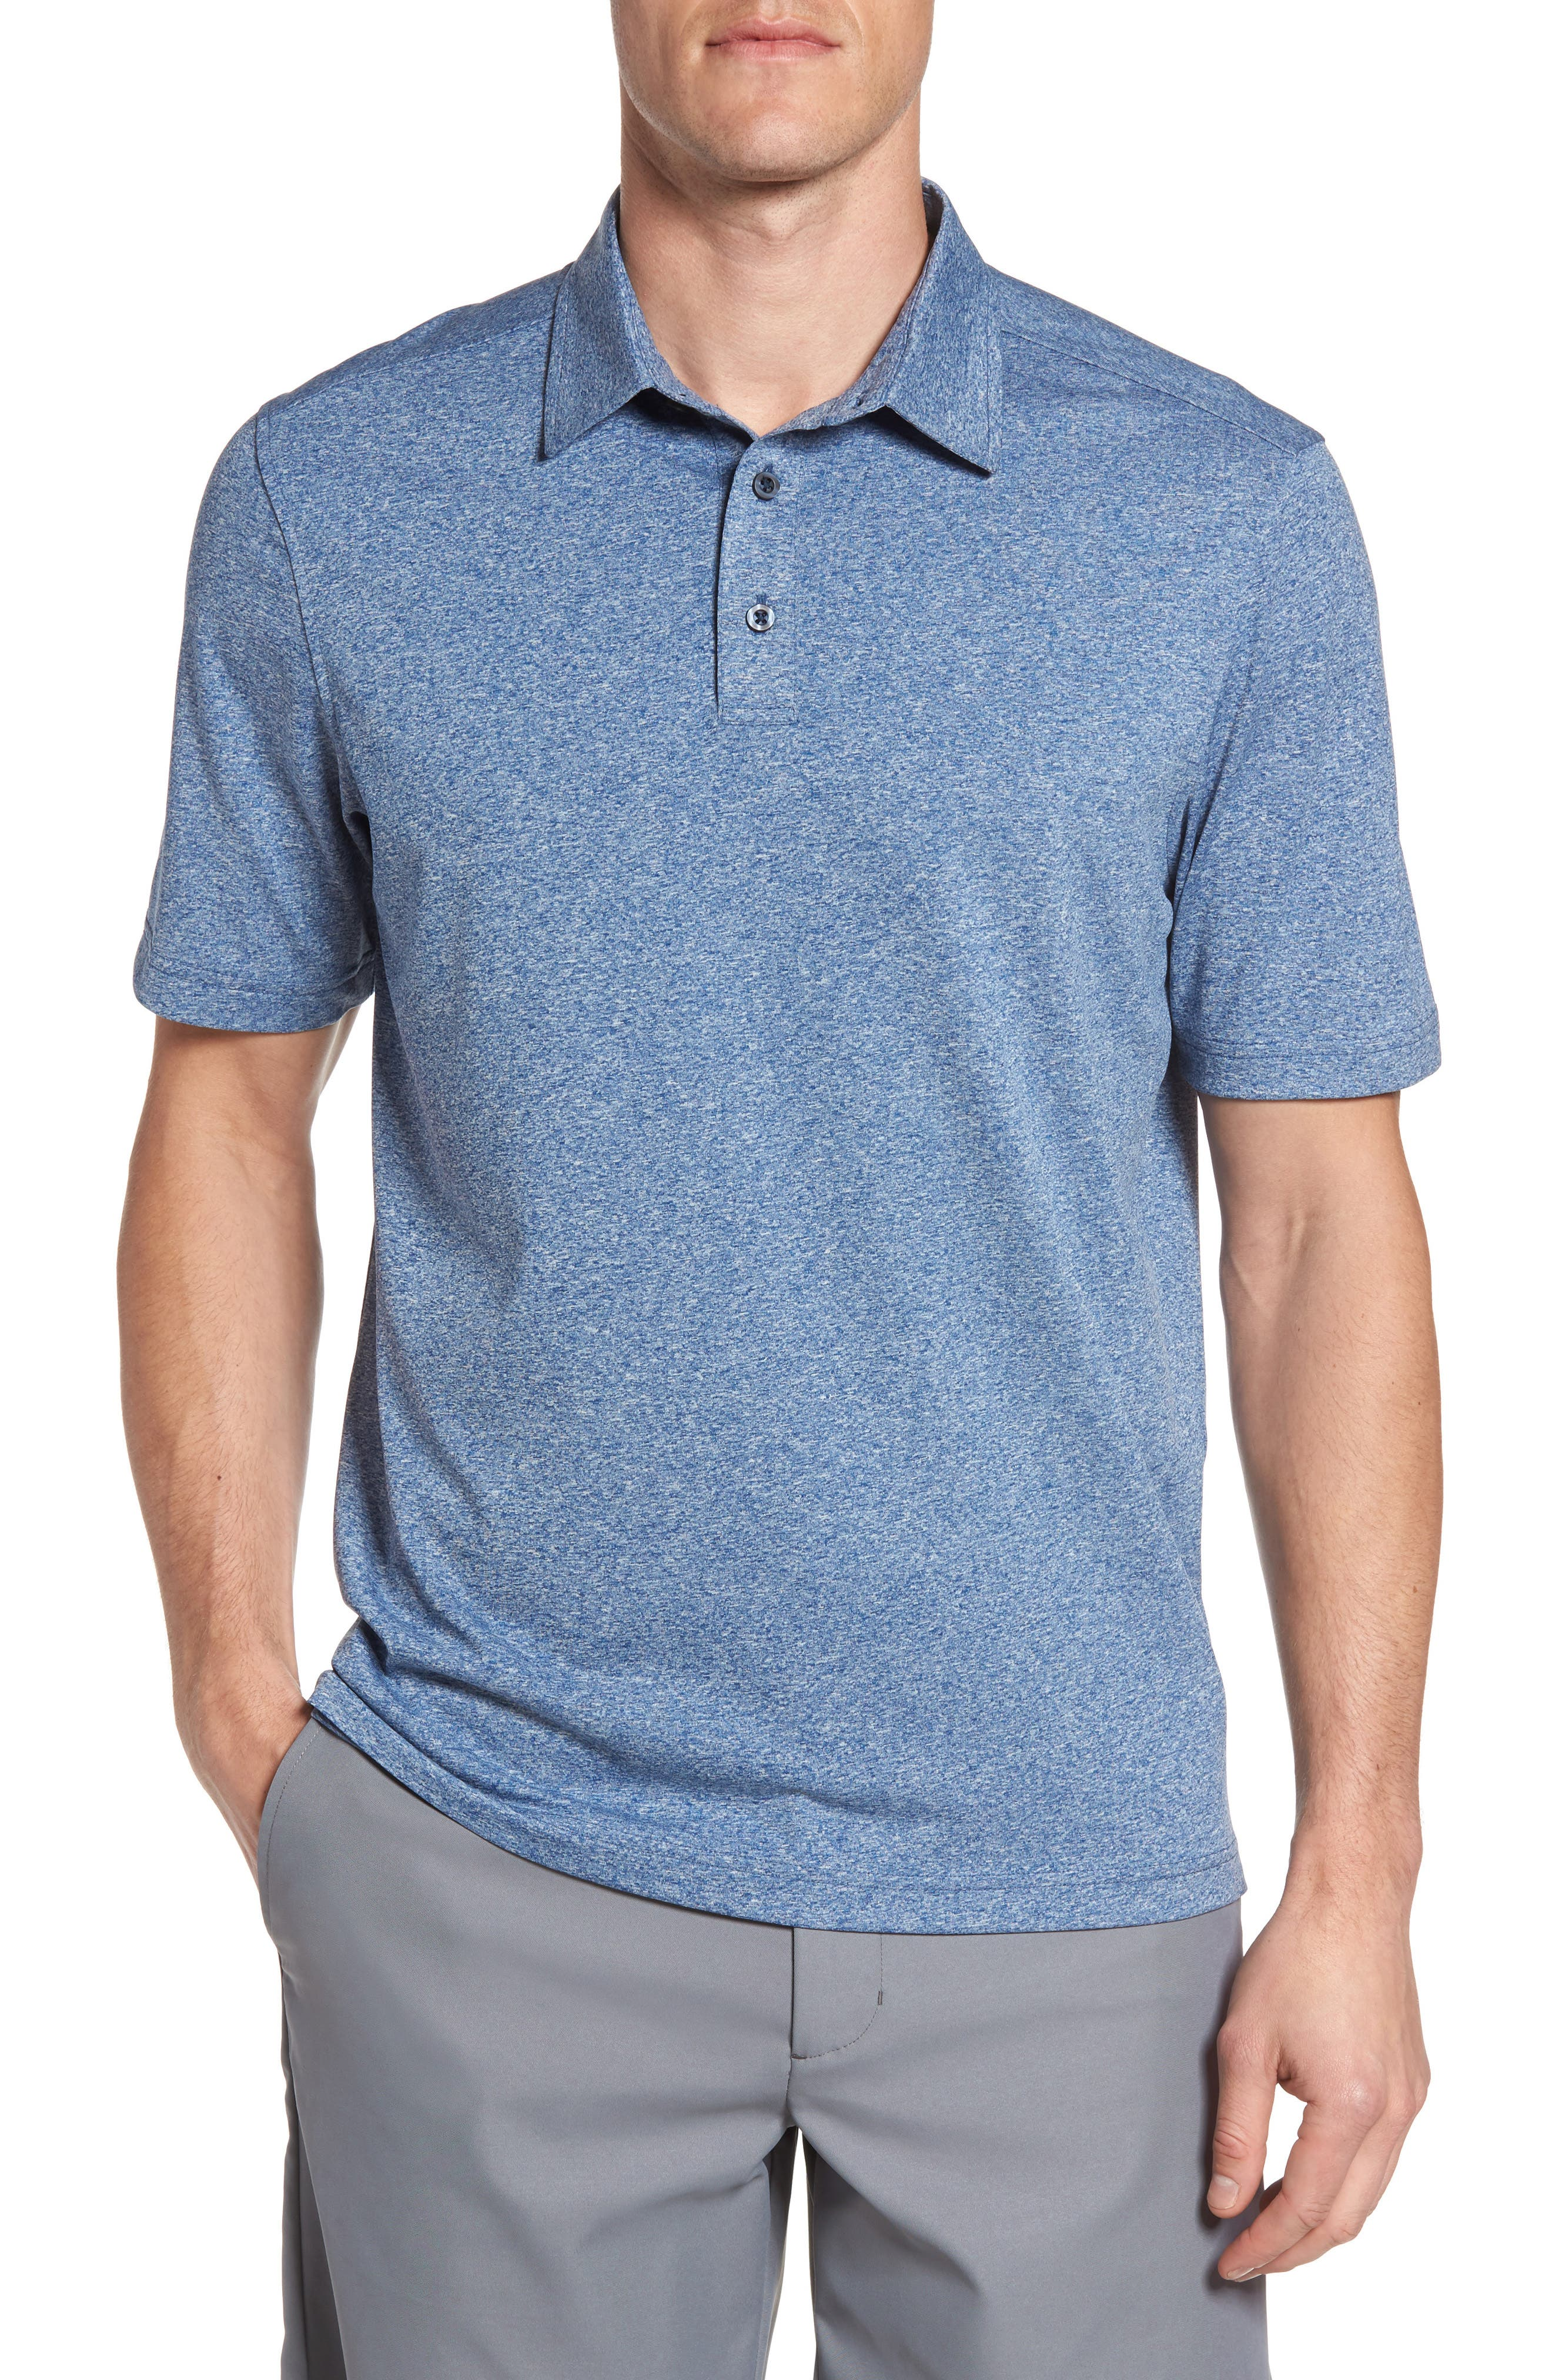 Nordstrom Men's Shop Regular Fit Performance Polo